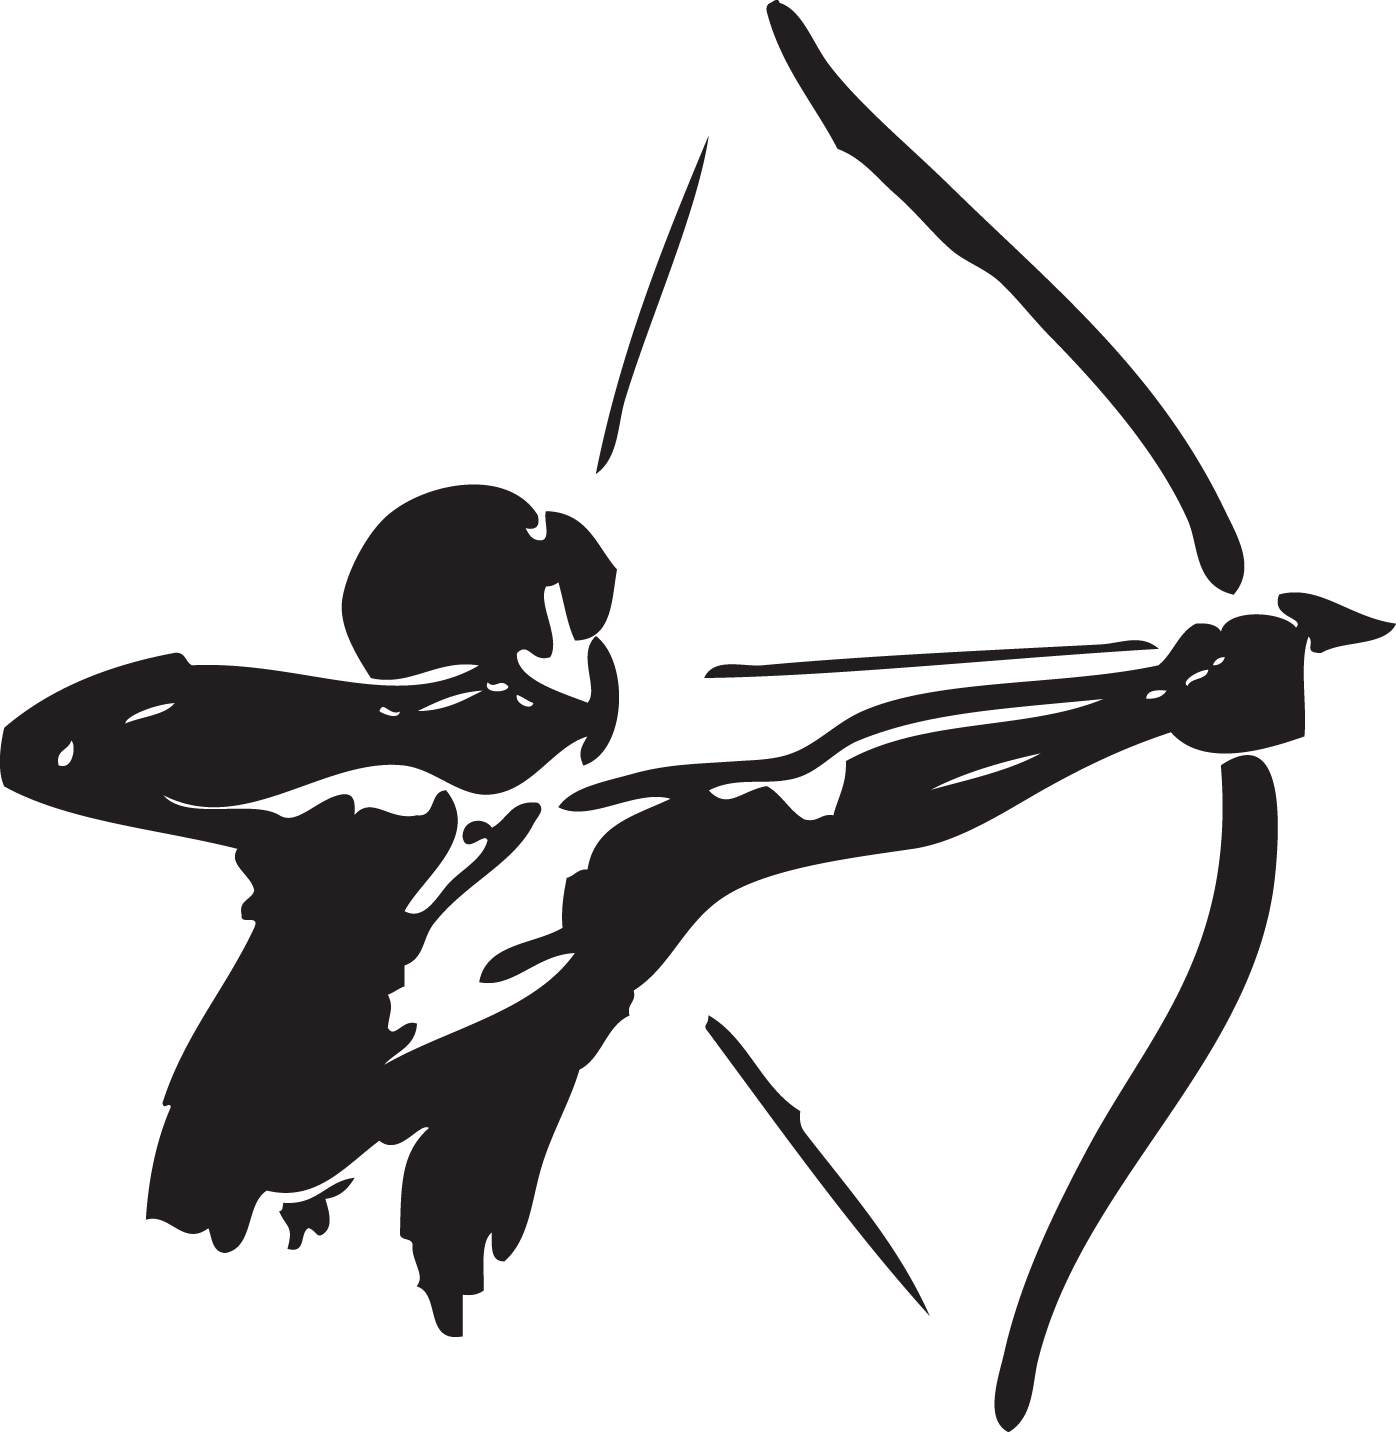 banner royalty free library And arrow hunting clip. Archery bow clipart